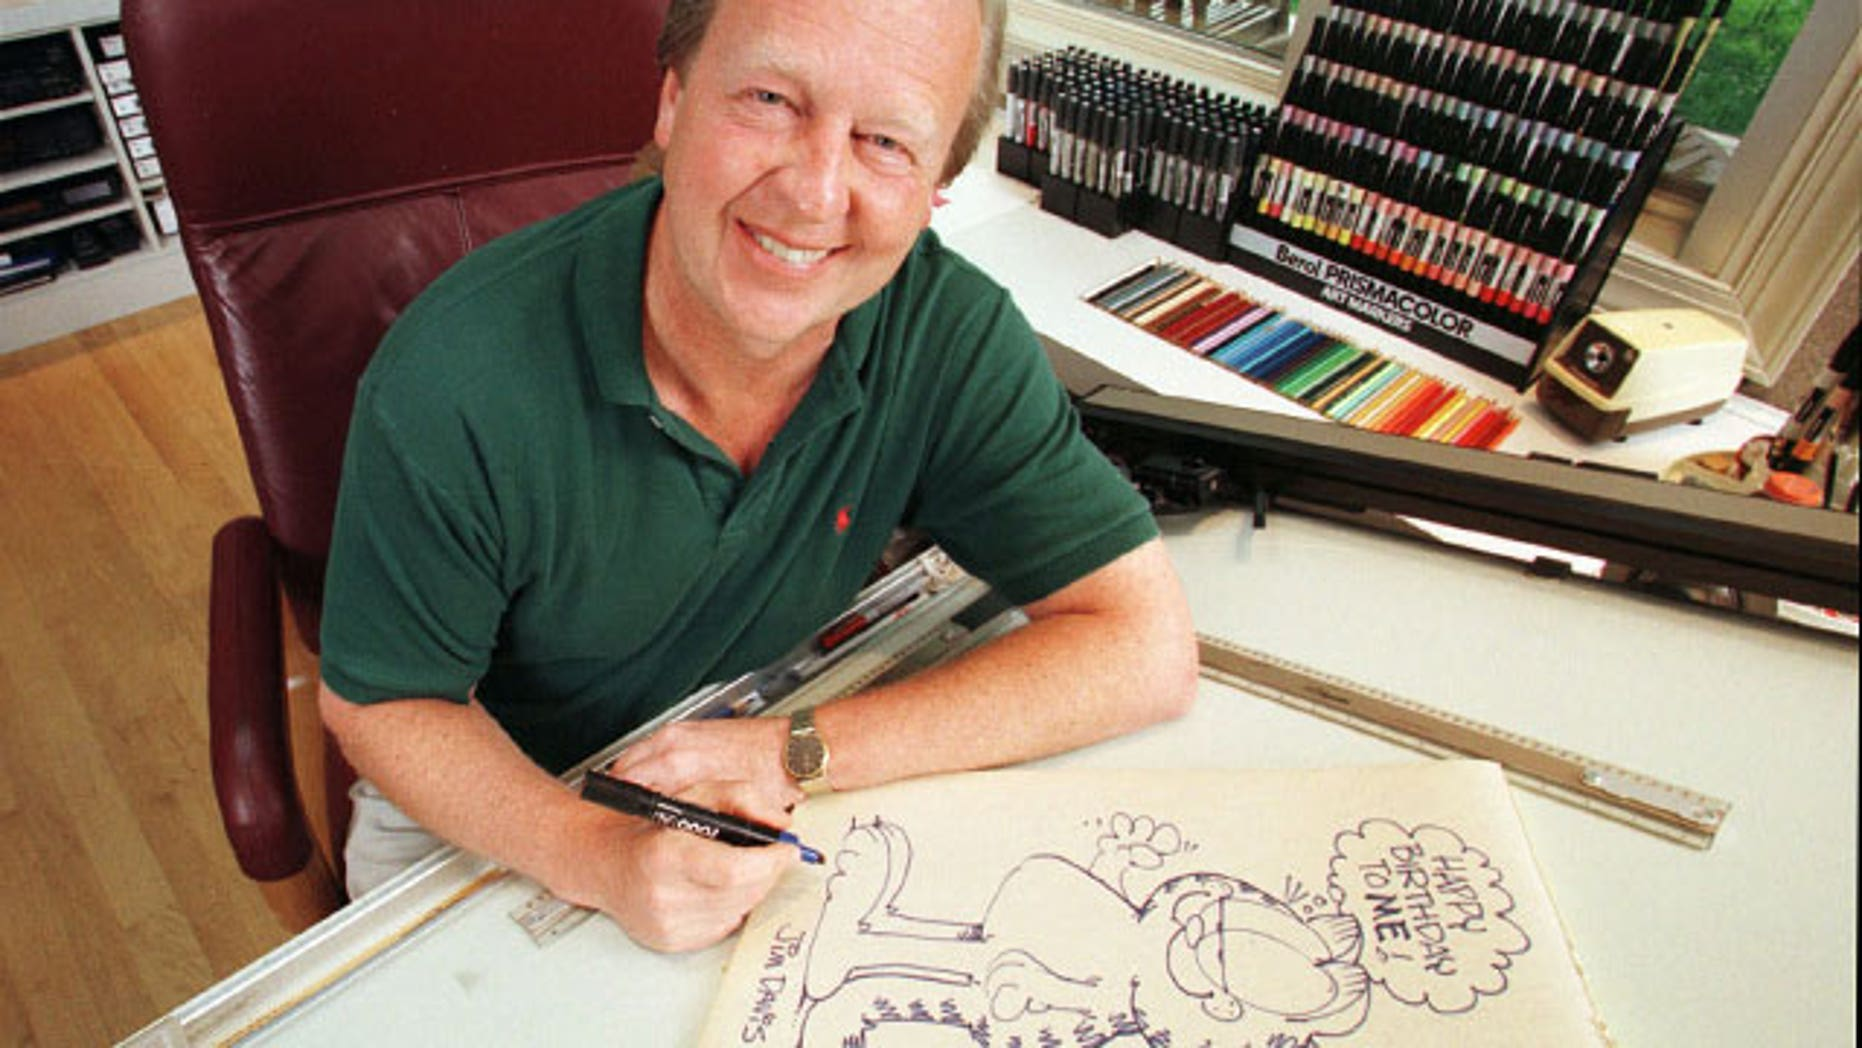 FILE - In this June 9, 1998 file photo, Garfield creator Jim Davis pauses after drawing the cartoon character in his Muncie, Ind., office.